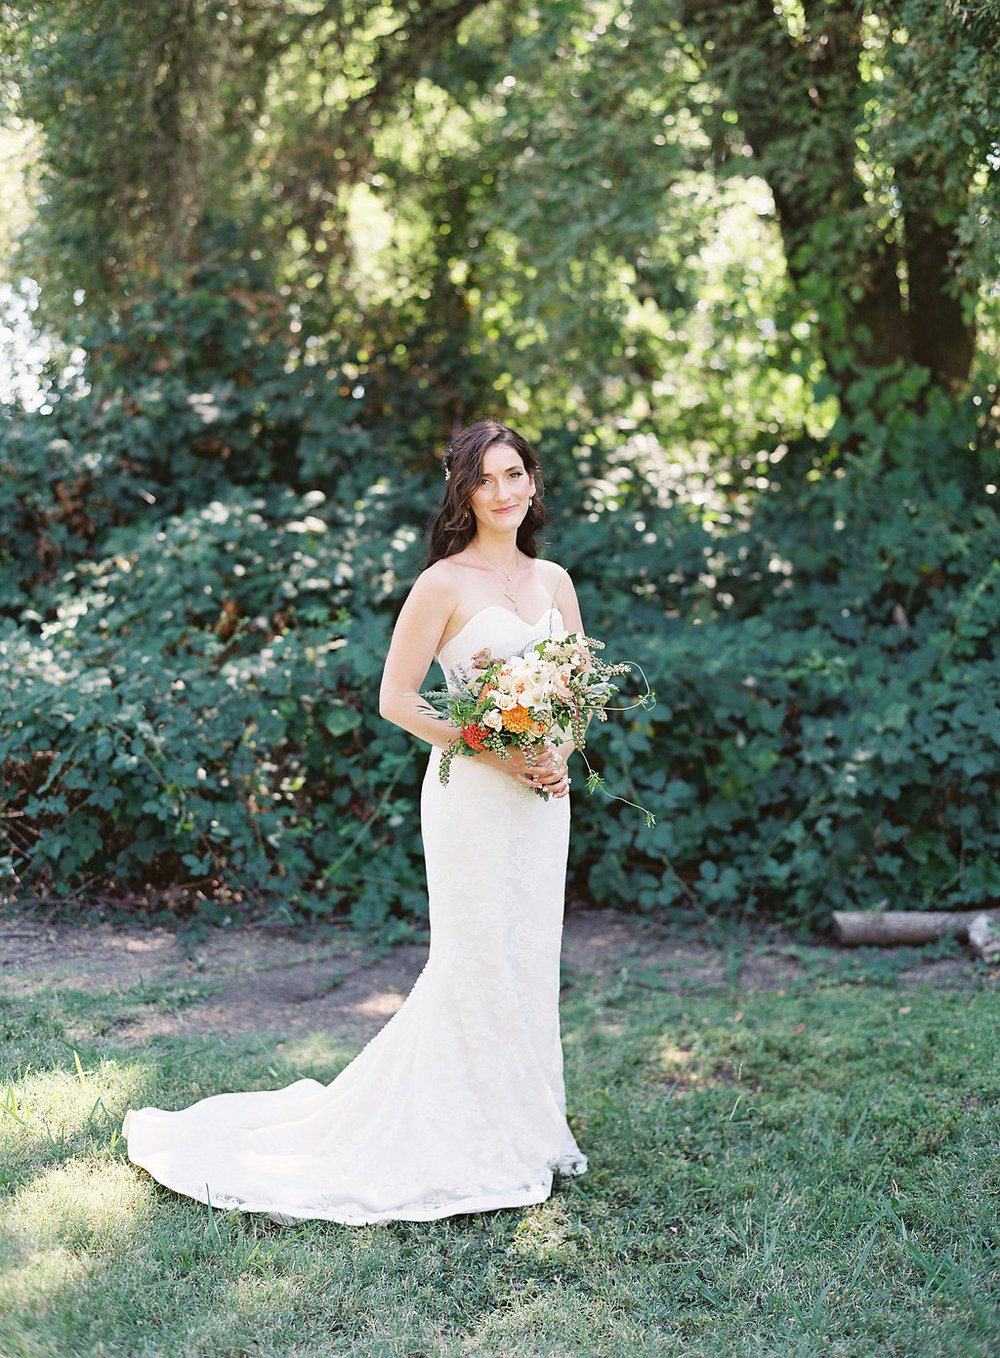 Meghan Mehan Photography - California Wedding Photography - Sacramento Wedding 014.jpg